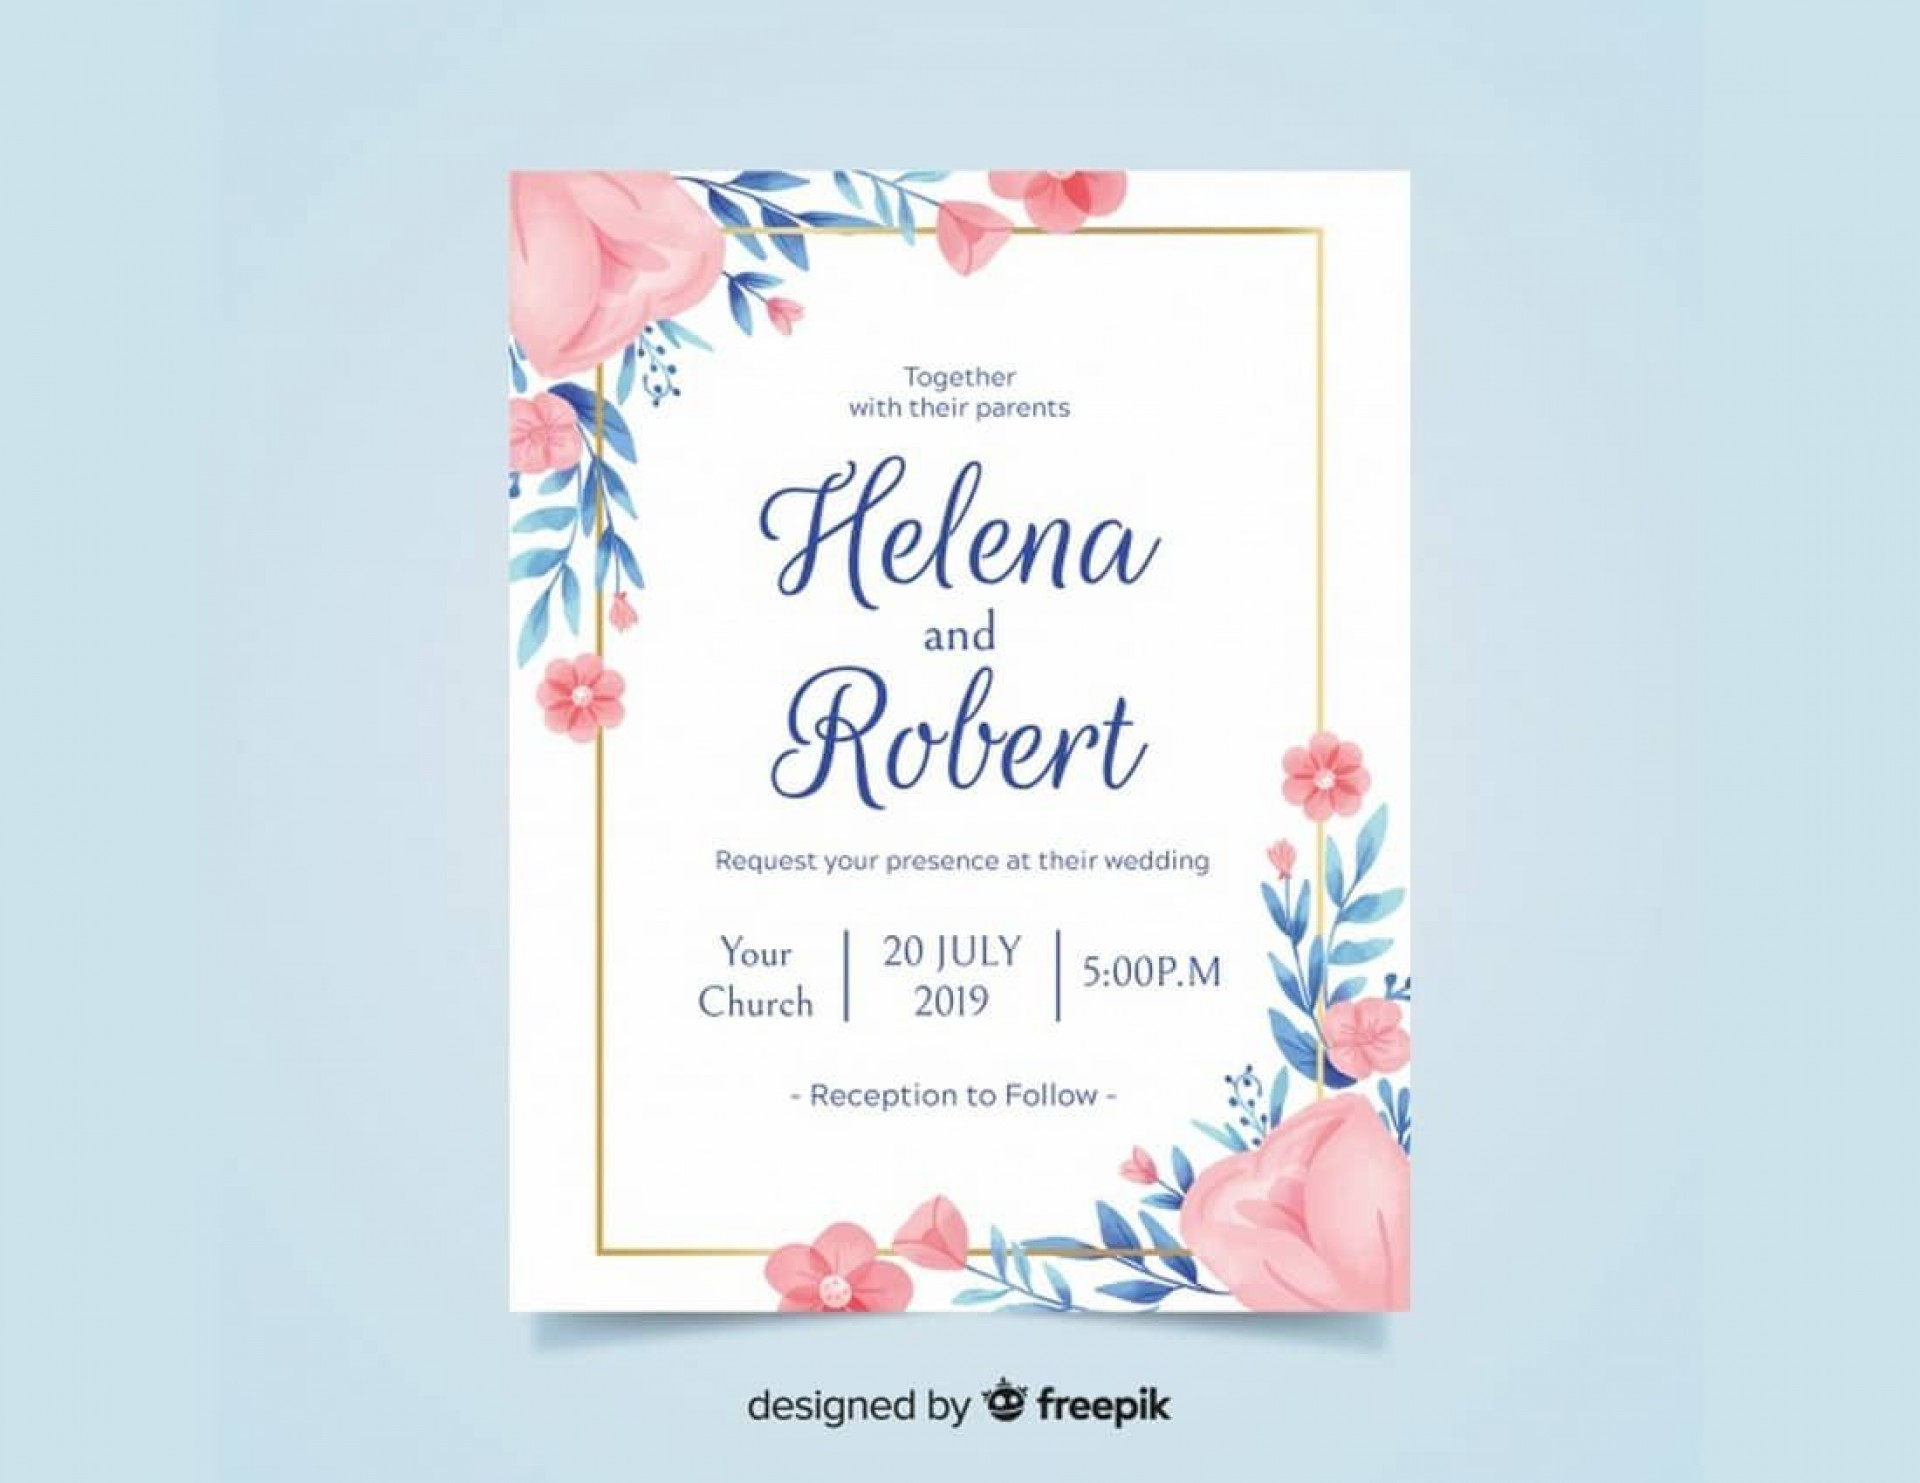 009 Exceptional Formal Wedding Invitation Template Free Sample 1920